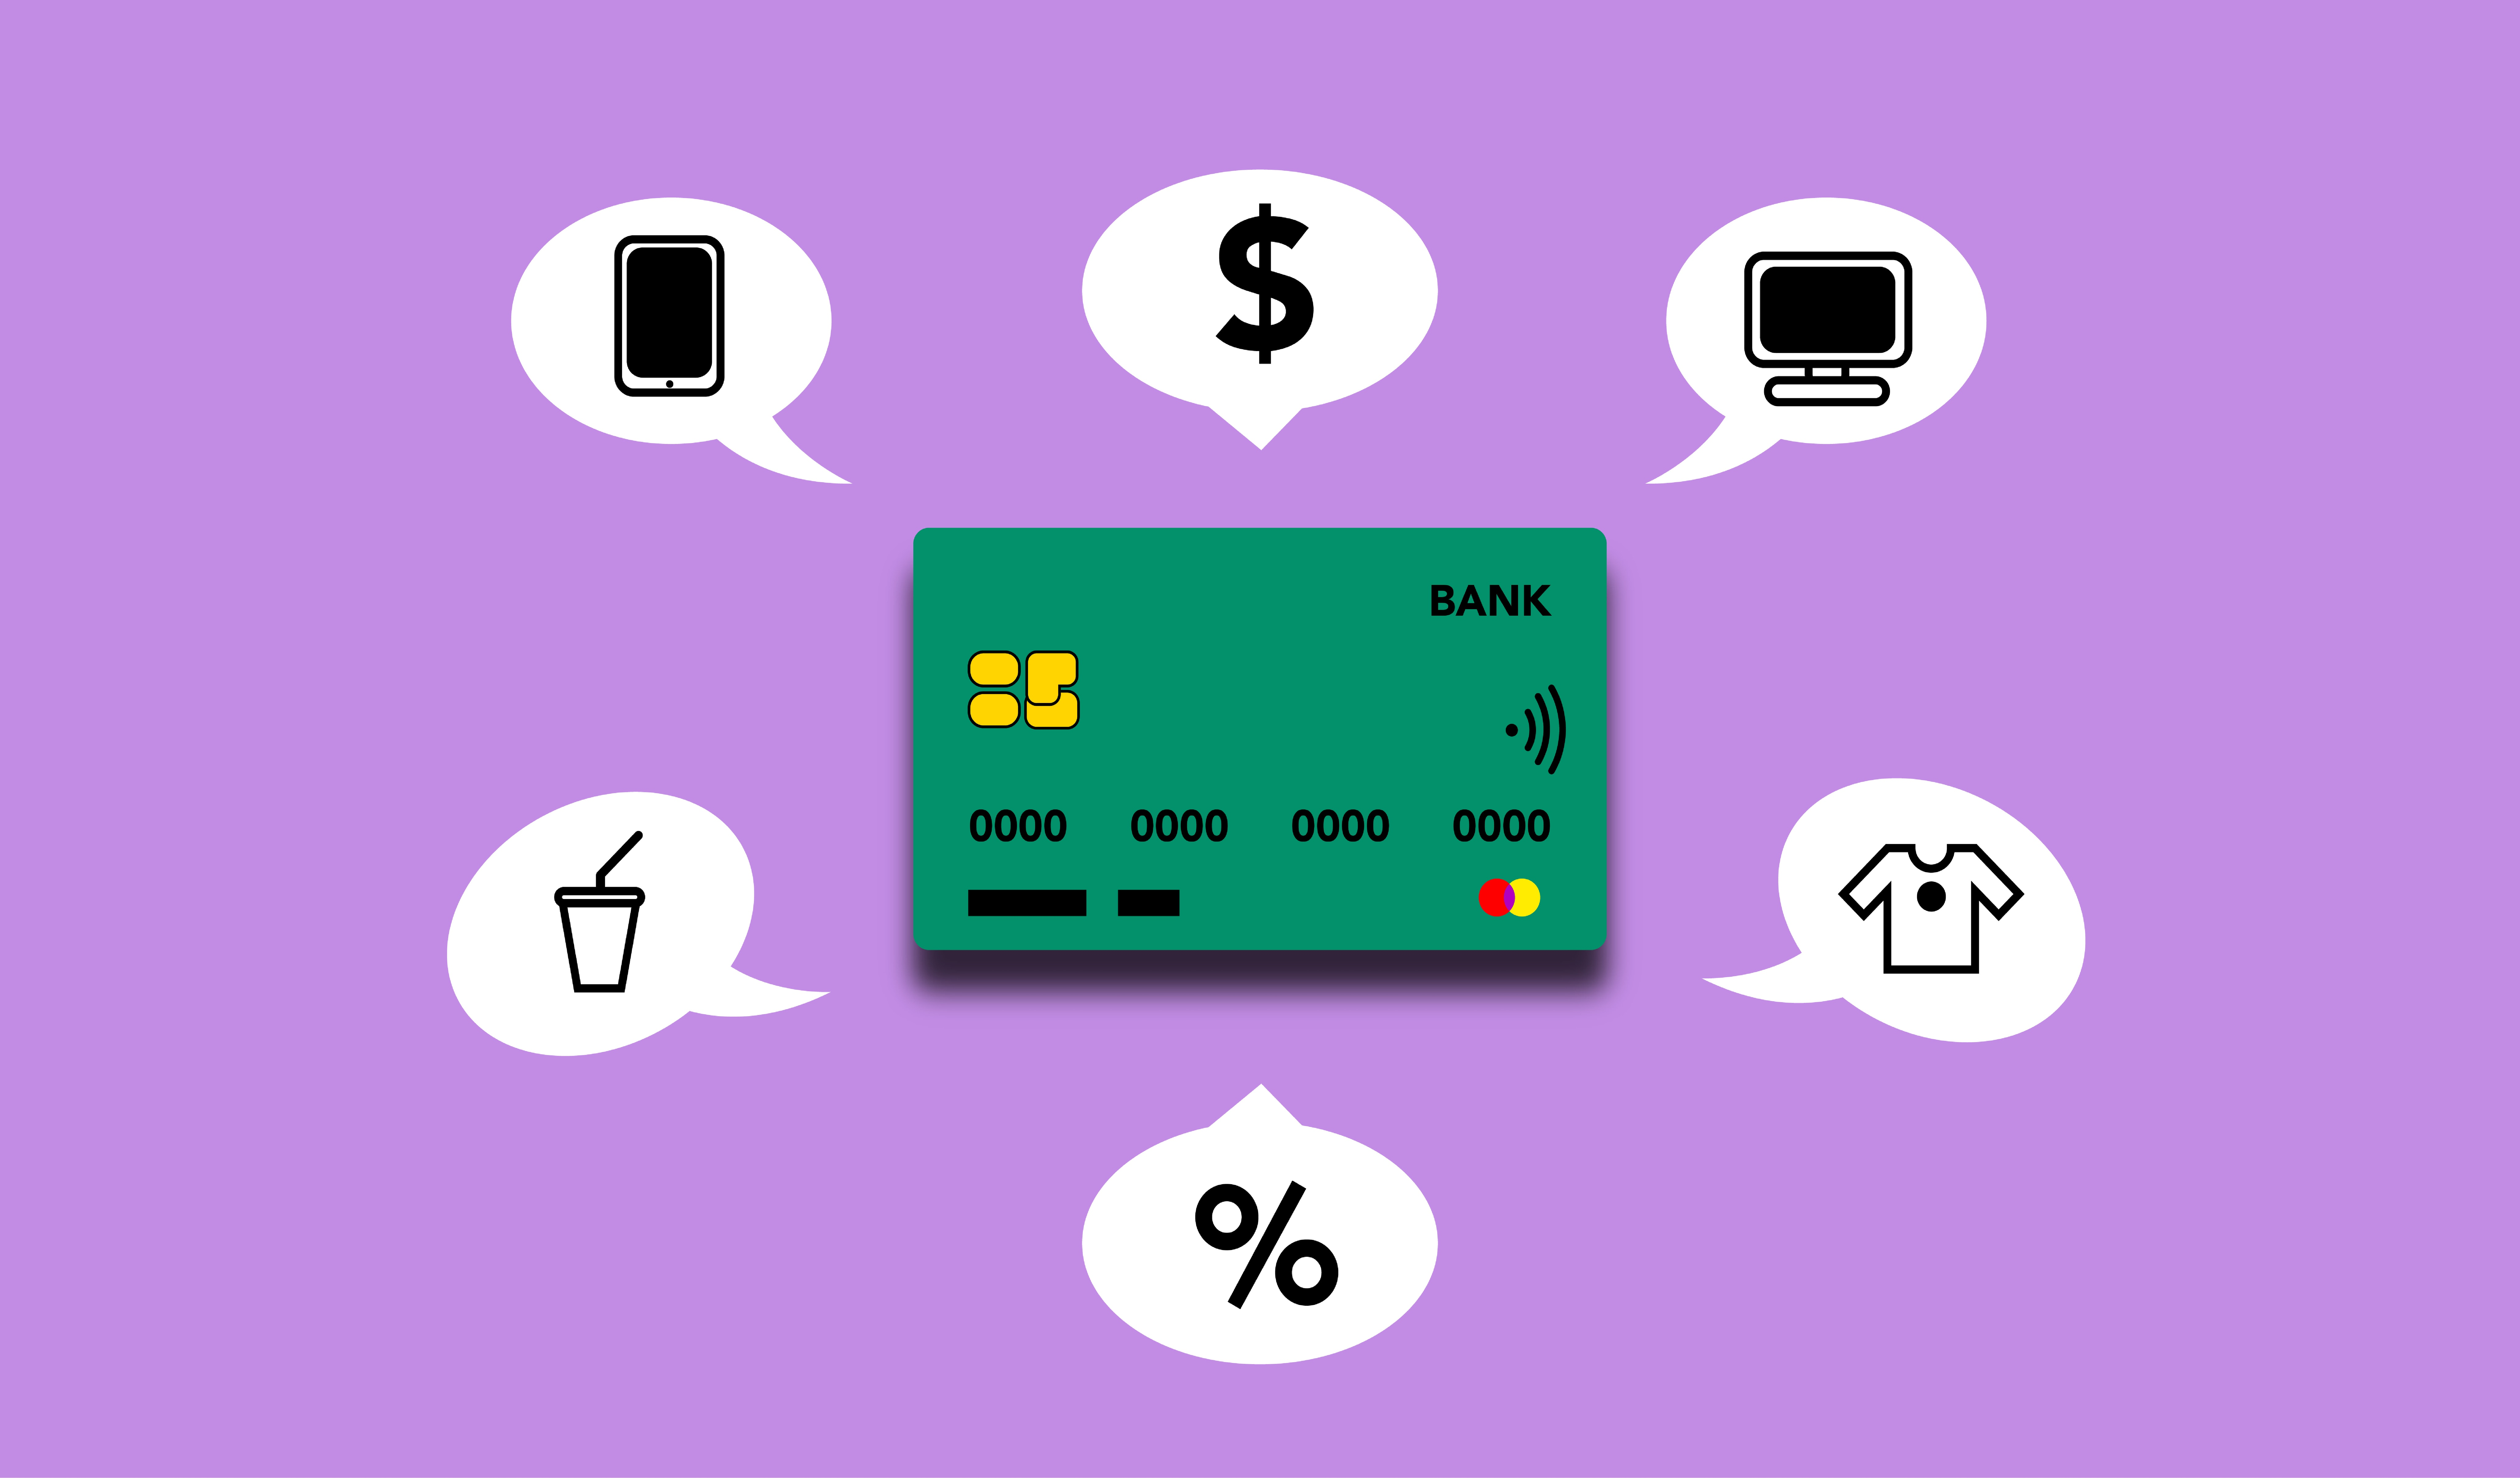 A credit card surrounded by spending habits - phones, clothes, eating out, etc